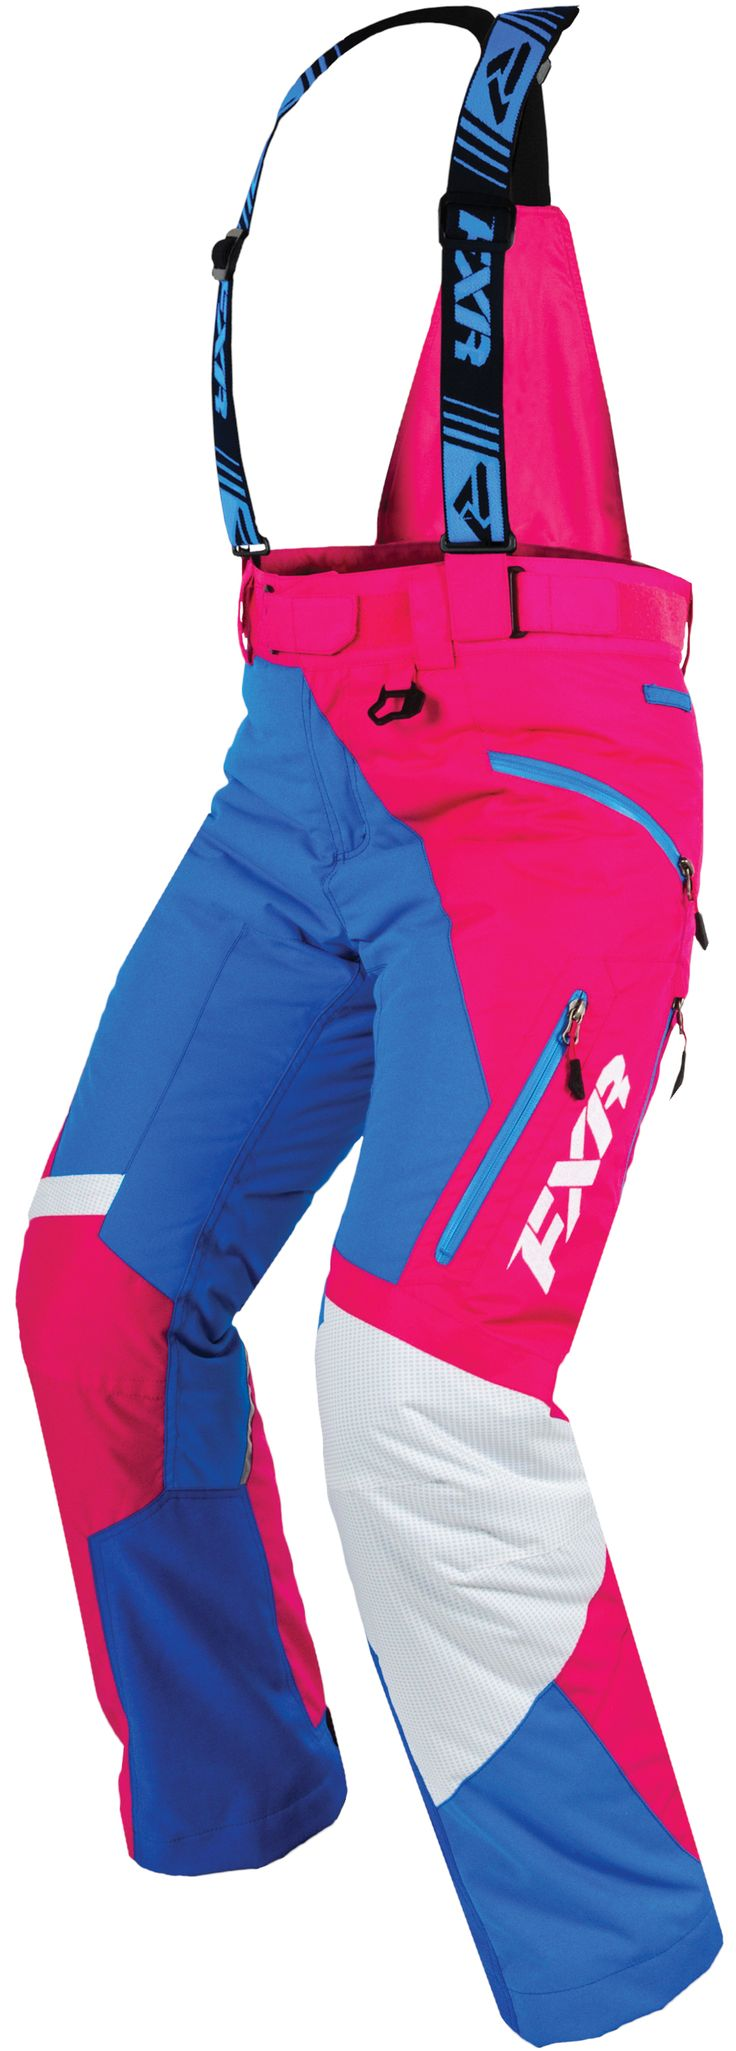 Fxr racing 2015 snowmobile apparel women s vertical pro pant fuchsia blue